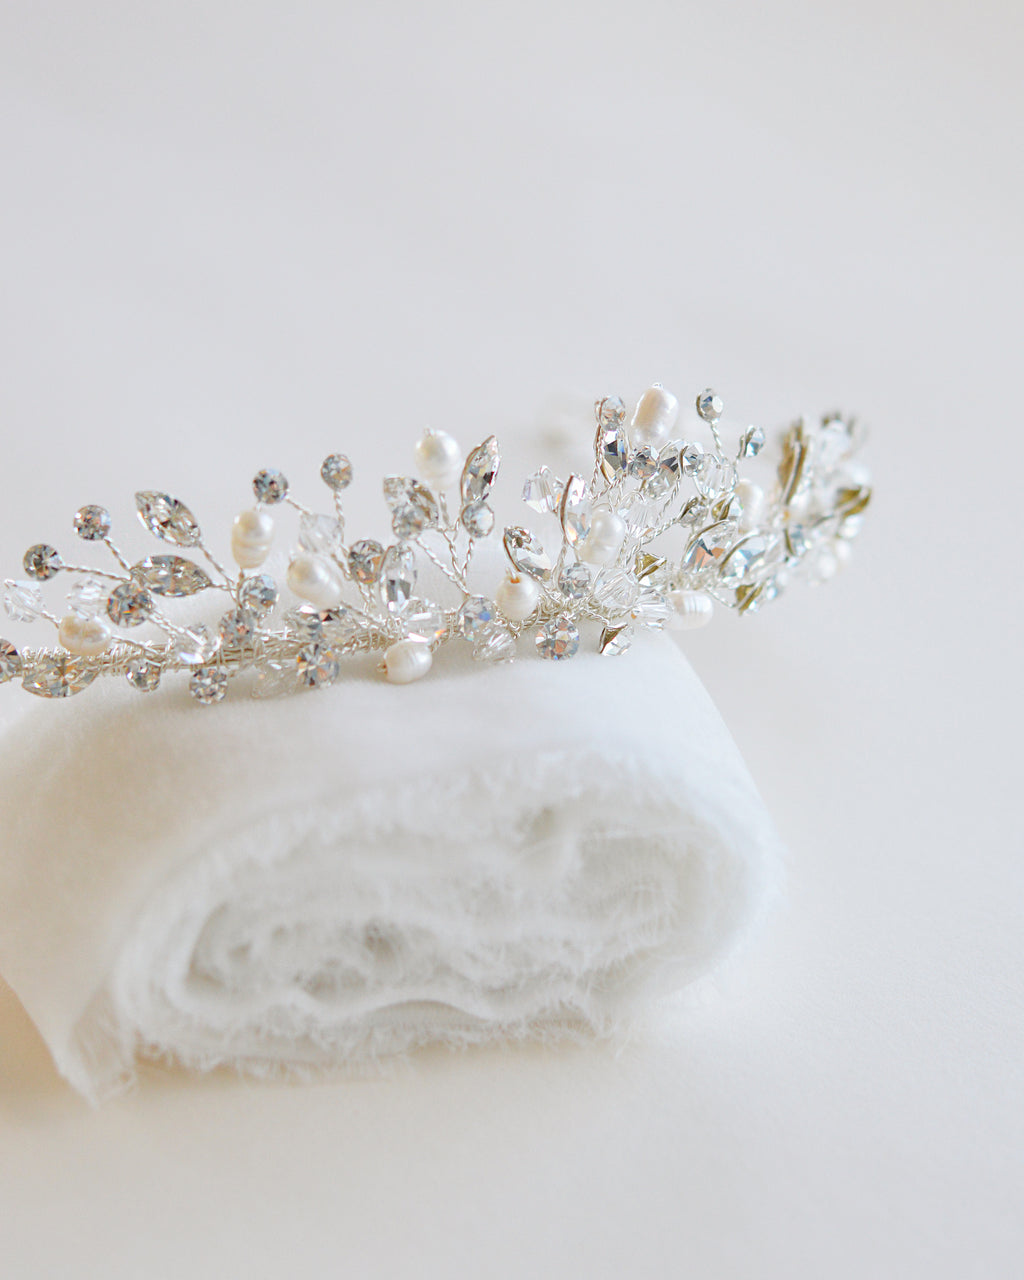 Silver Crystal & Pearl Wedding Day Tiara